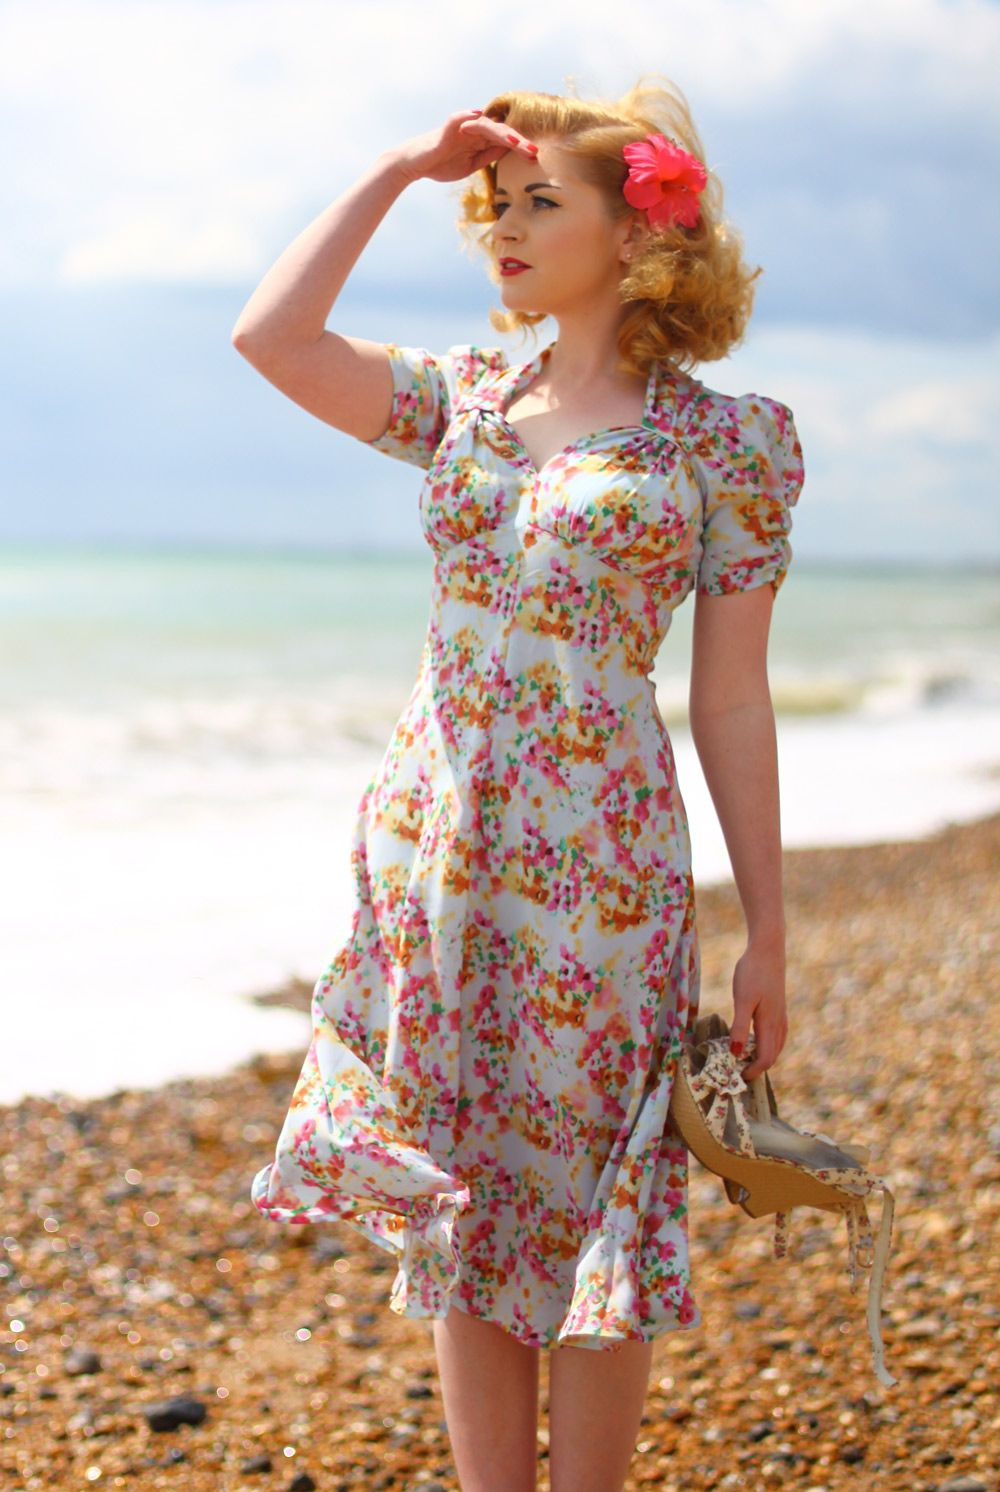 The Real And The Inspired By 1940s Fashion: I Would Dress Like This All The Time If I Could Afford To